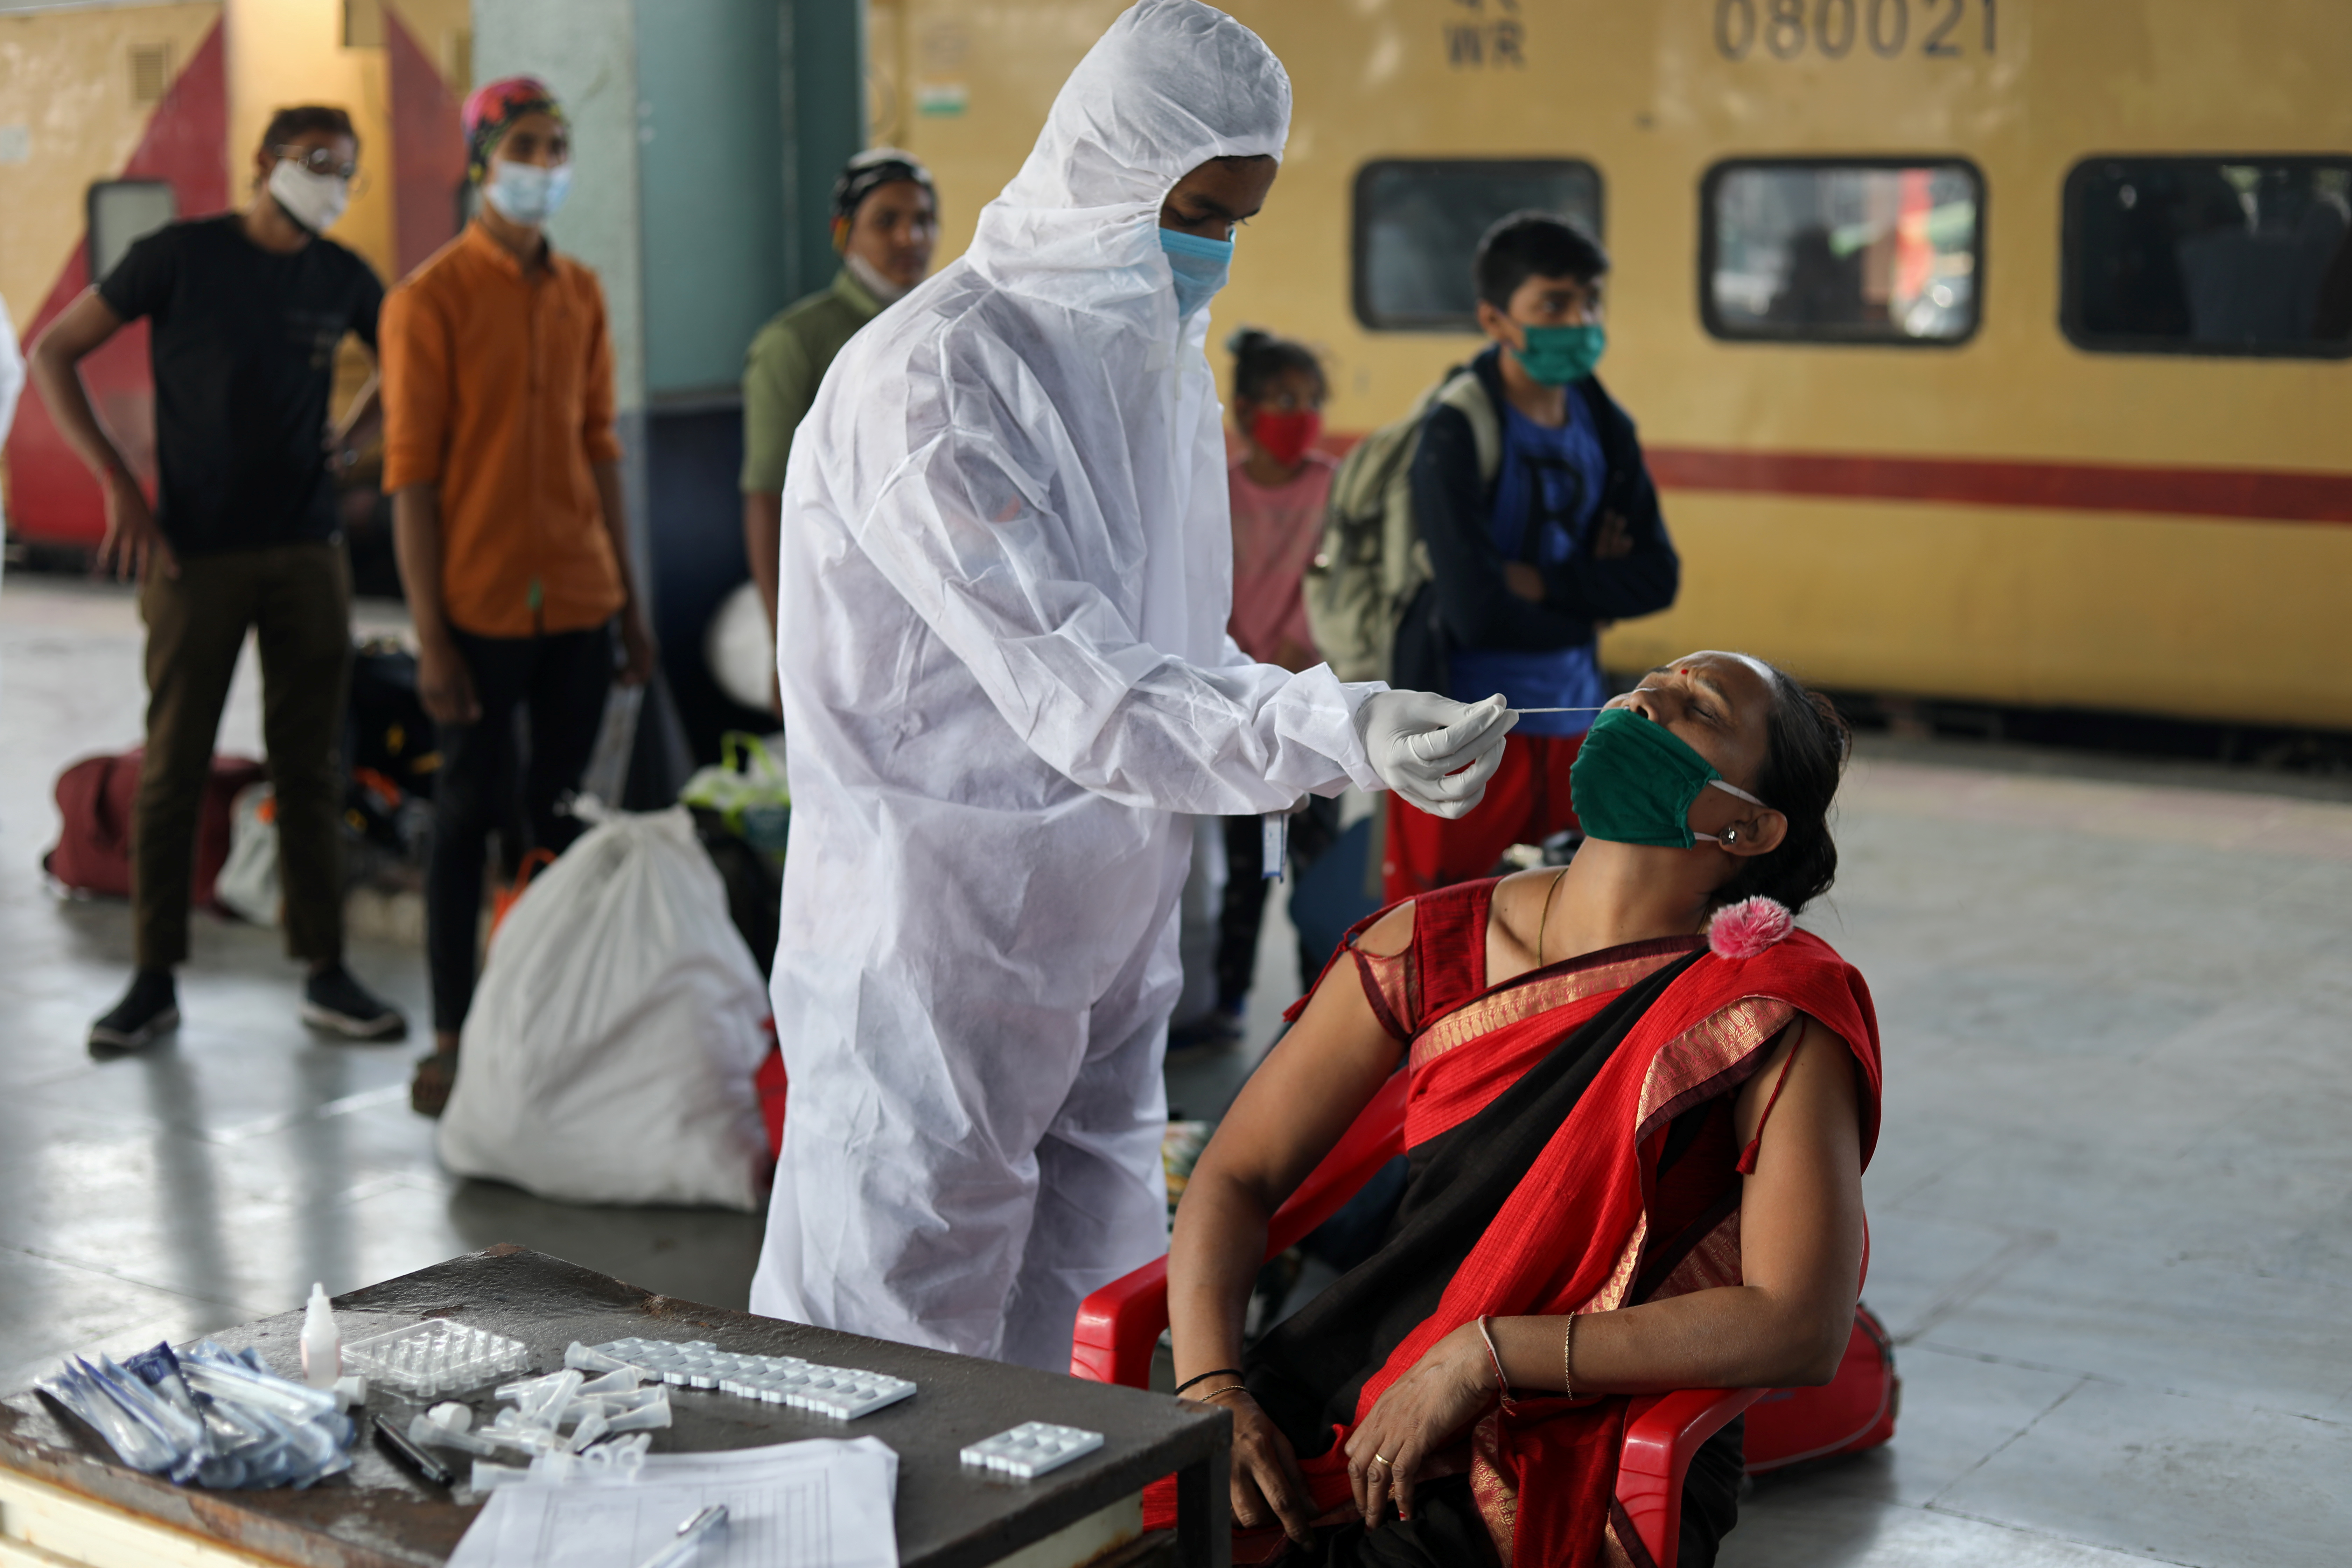 A health worker in personal protective equipment (PPE) collects a swab sample from a woman during a rapid antigen testing campaign for the coronavirus disease (COVID-19), at a railway station platform in Mumbai, India, December 19, 2020. REUTERS/Francis Mascarenhas